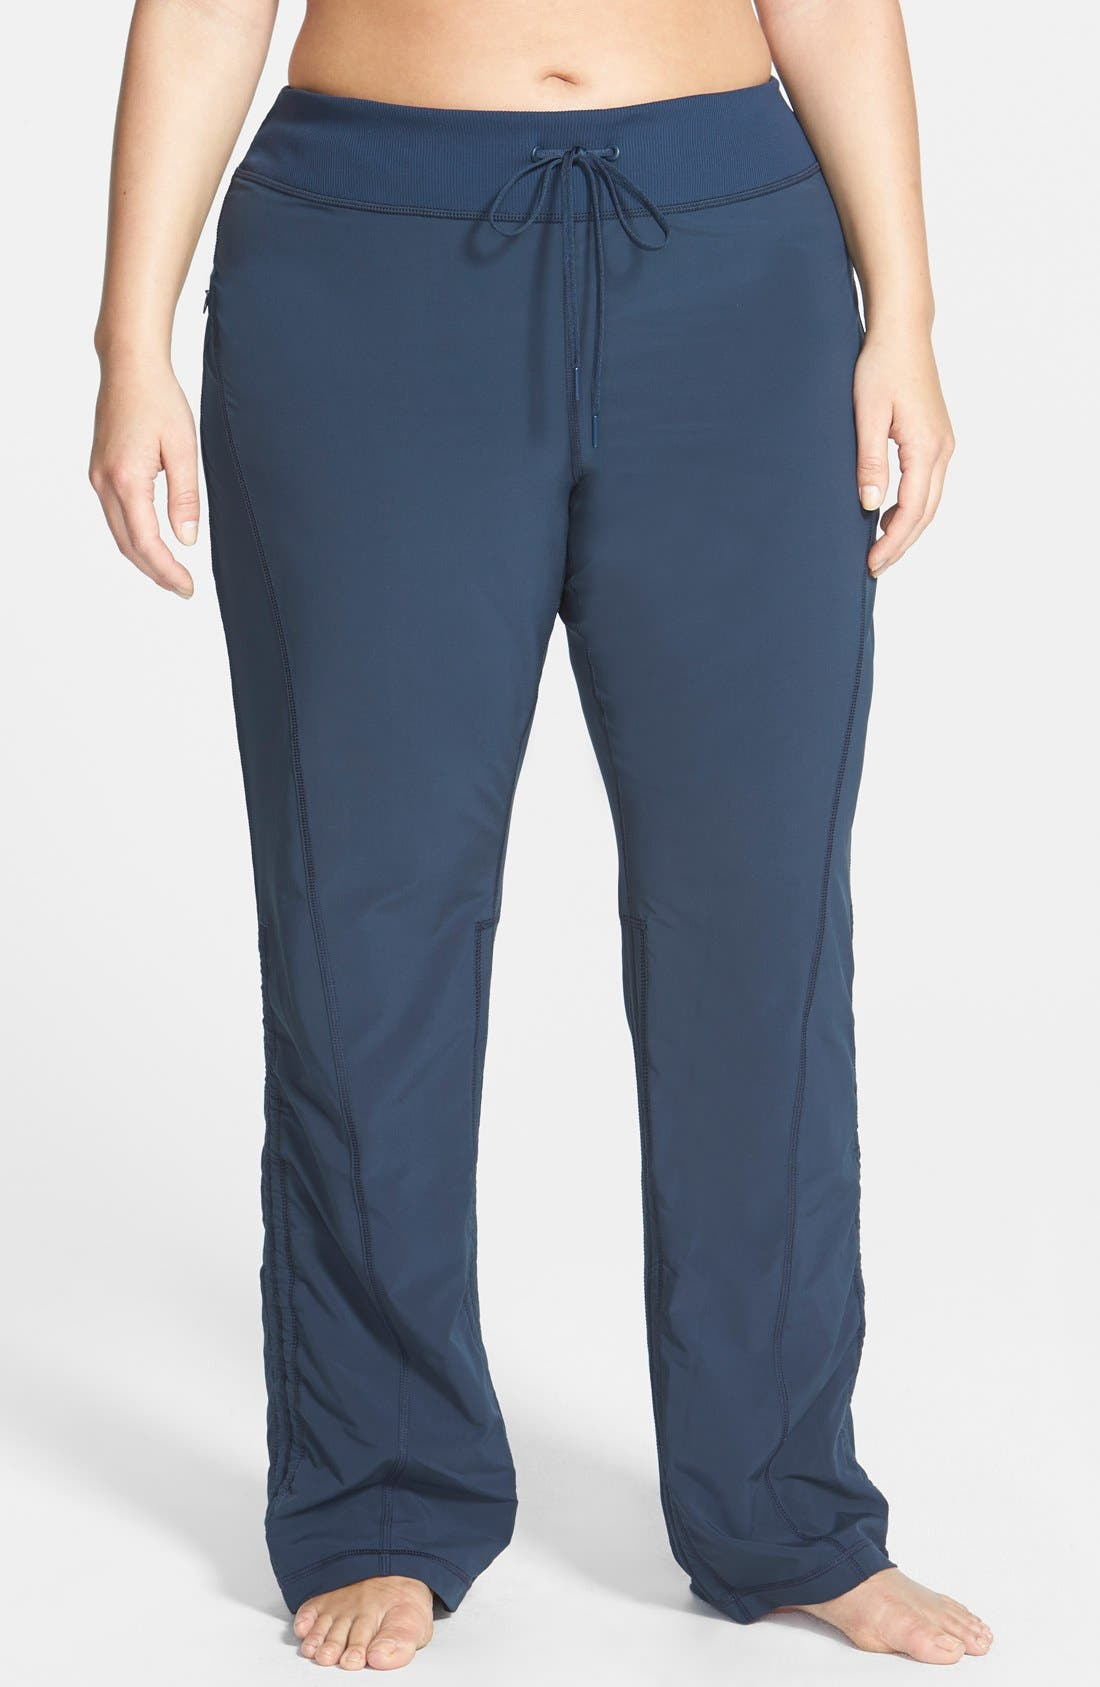 'Work It' Pants,                             Main thumbnail 1, color,                             Navy Eclipse